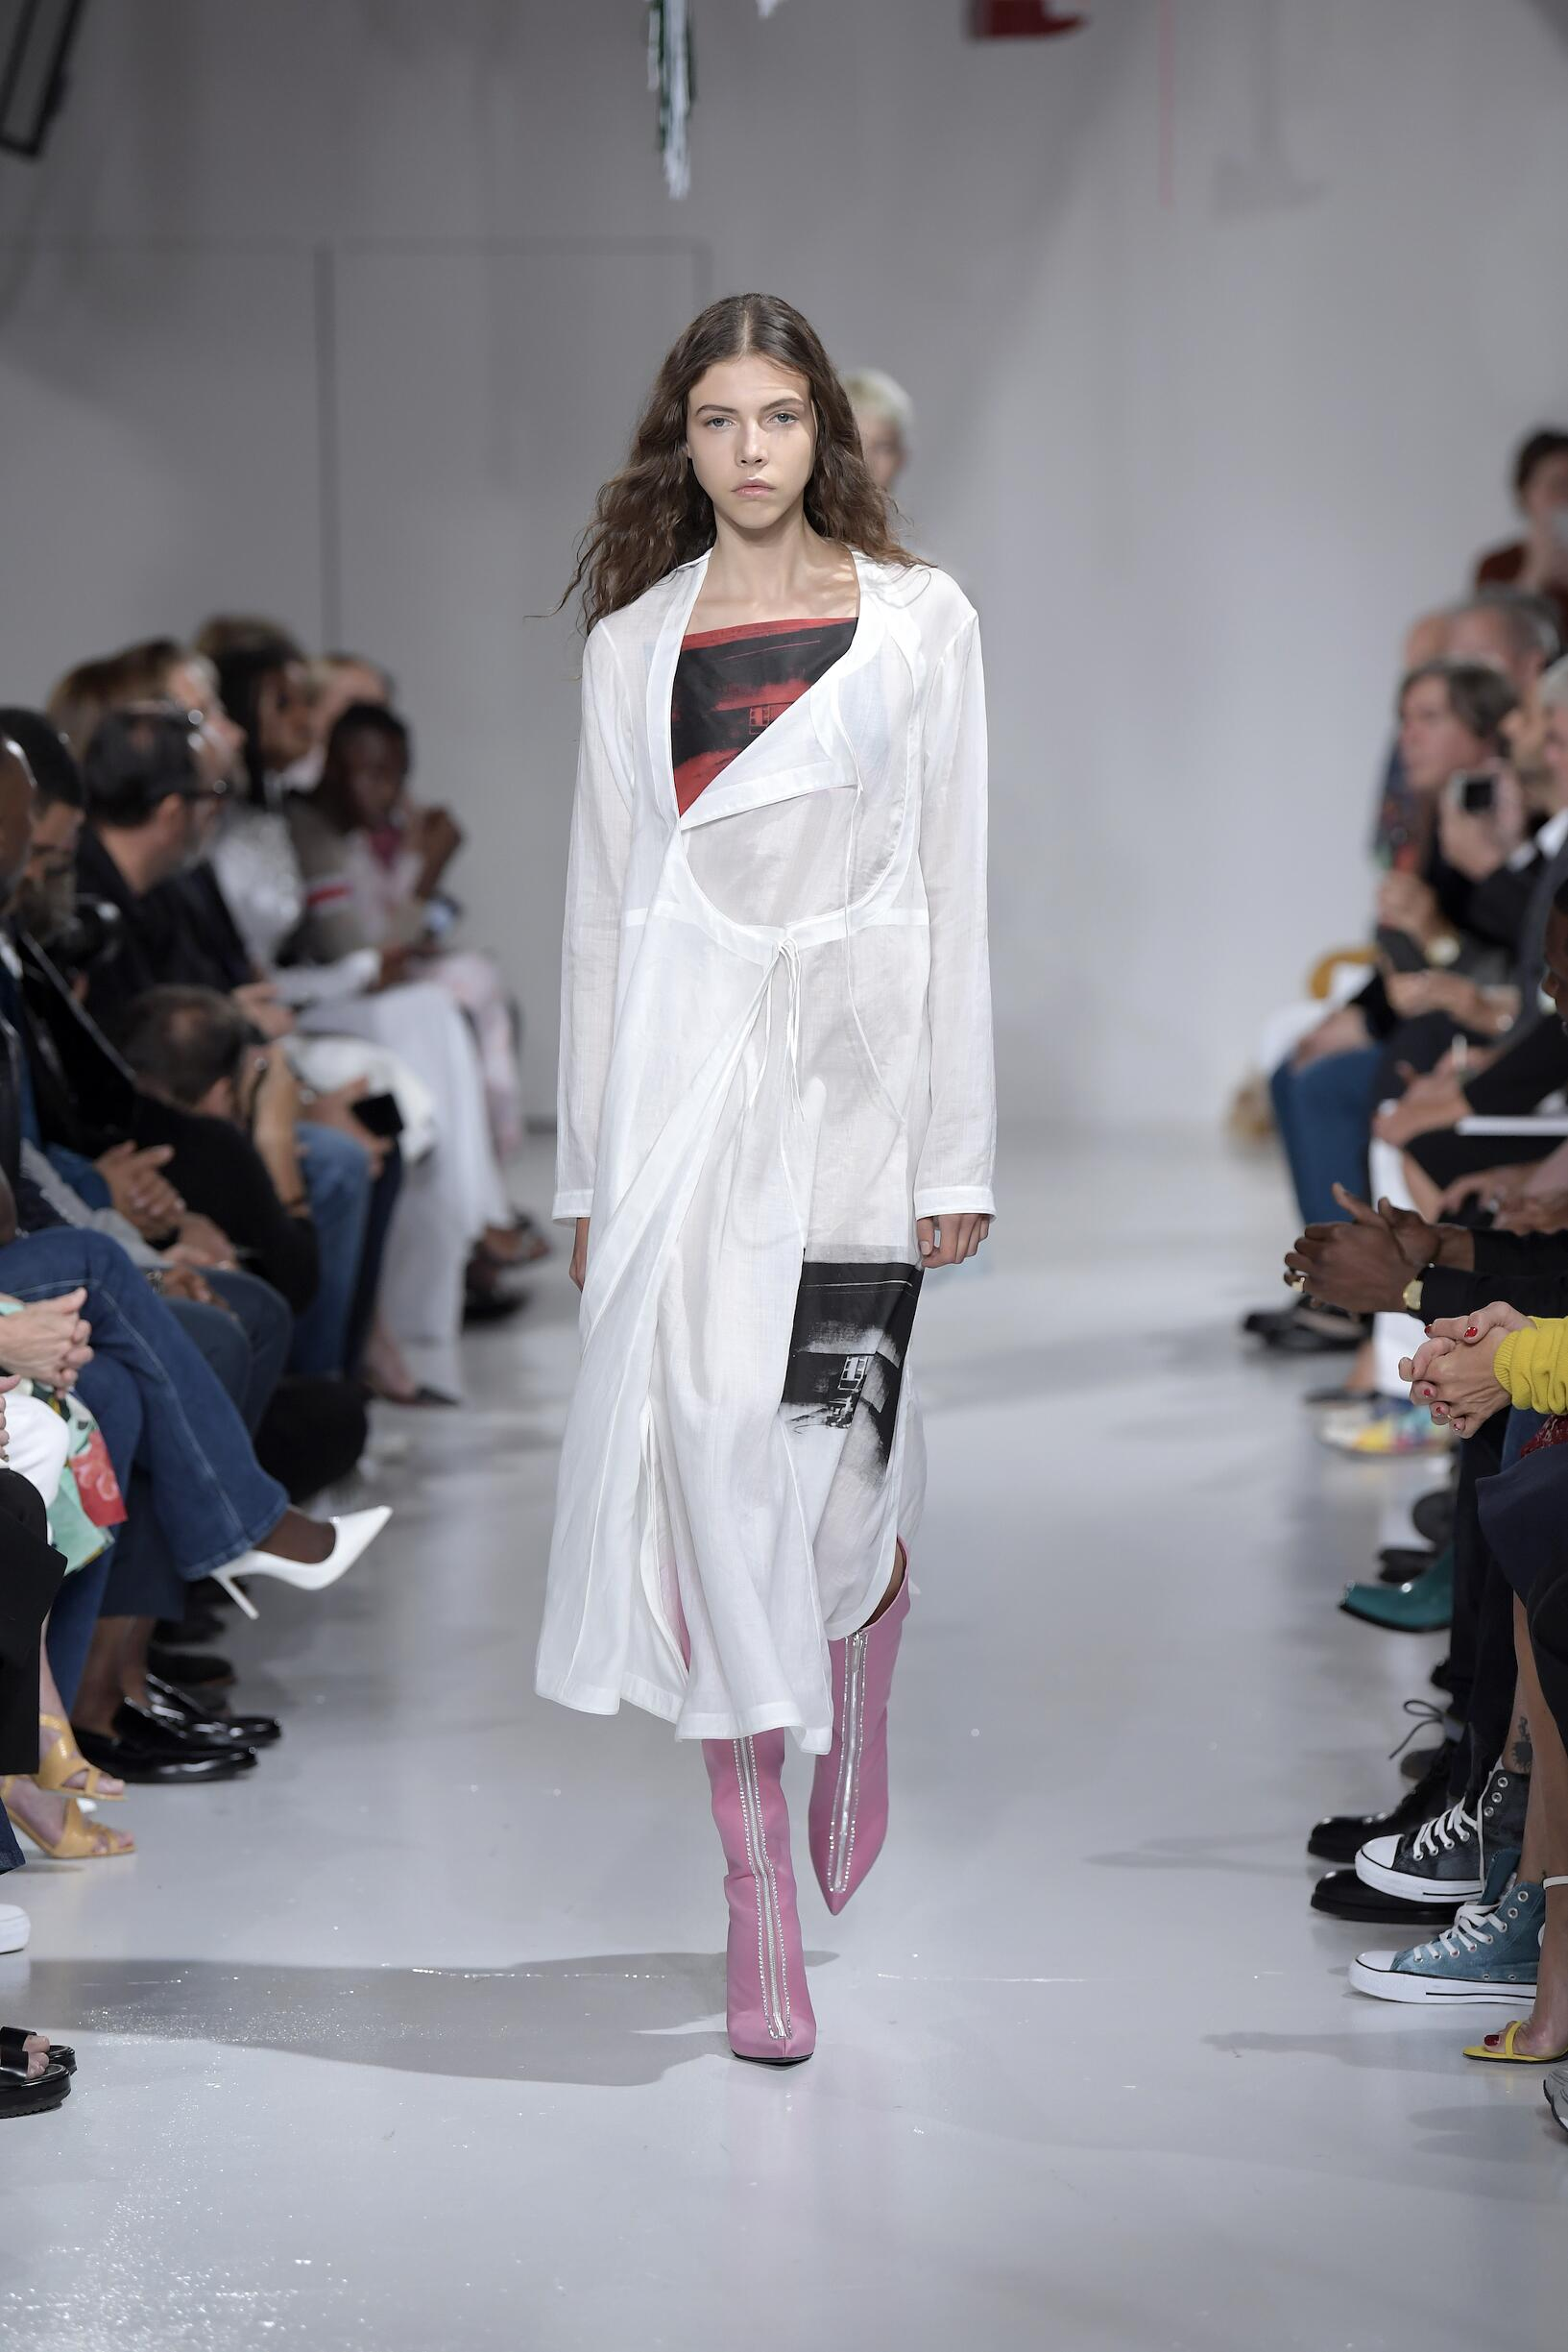 Runway Calvin Klein 205W39NYC Spring Summer 2018 Women's Collection New York Fashion Week